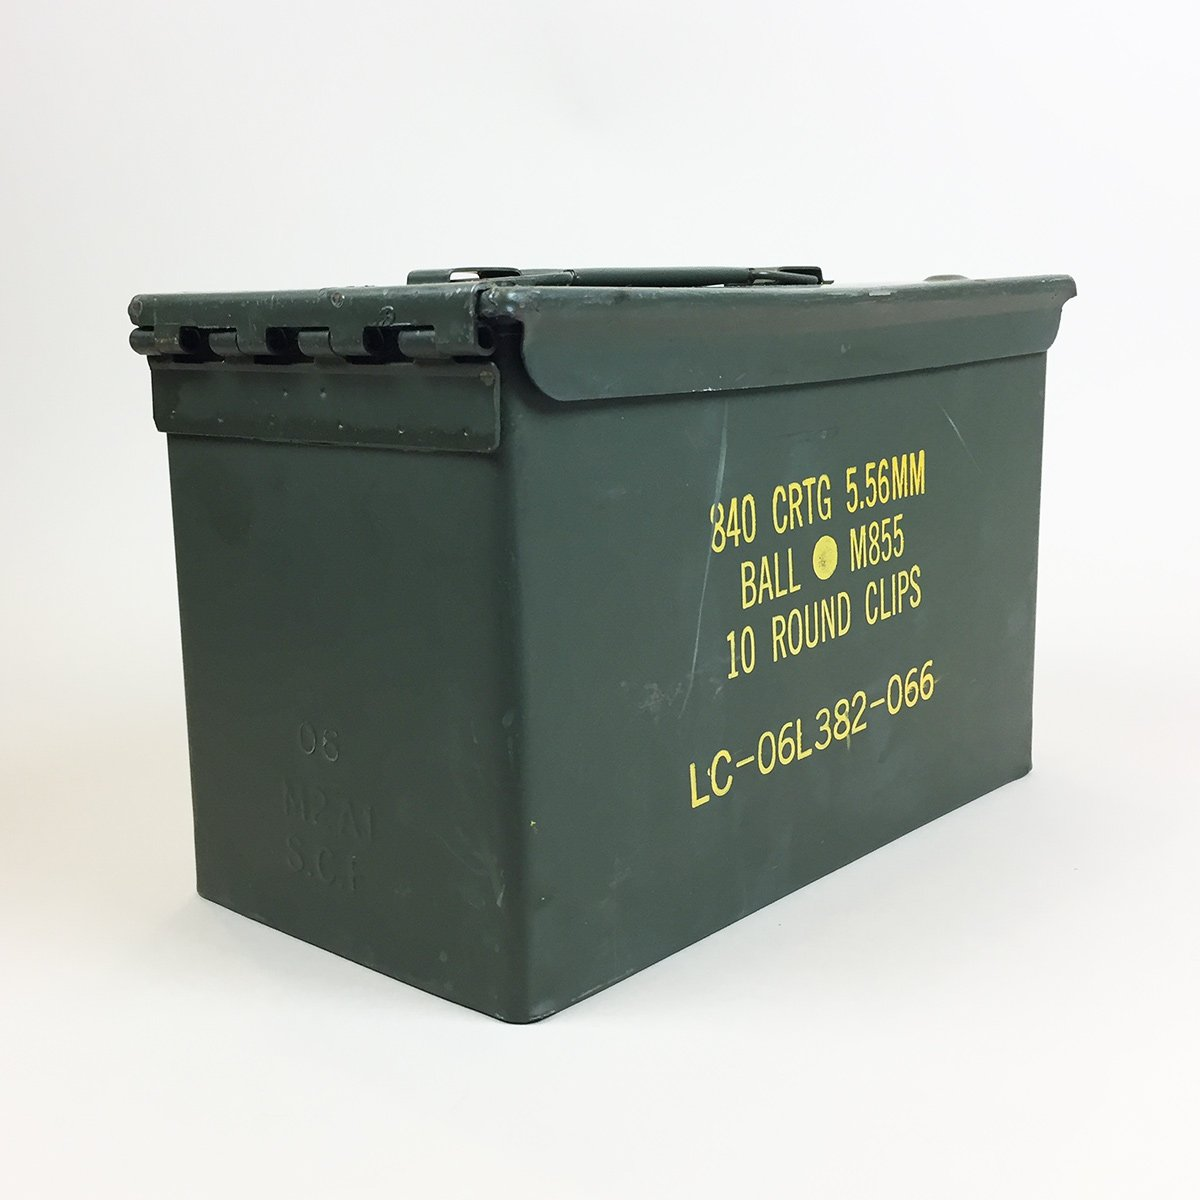 USED GRADE A - U.S.G.I. M2A1 .50 Caliber Ammo Can - Case of 12 - $8.95 Each